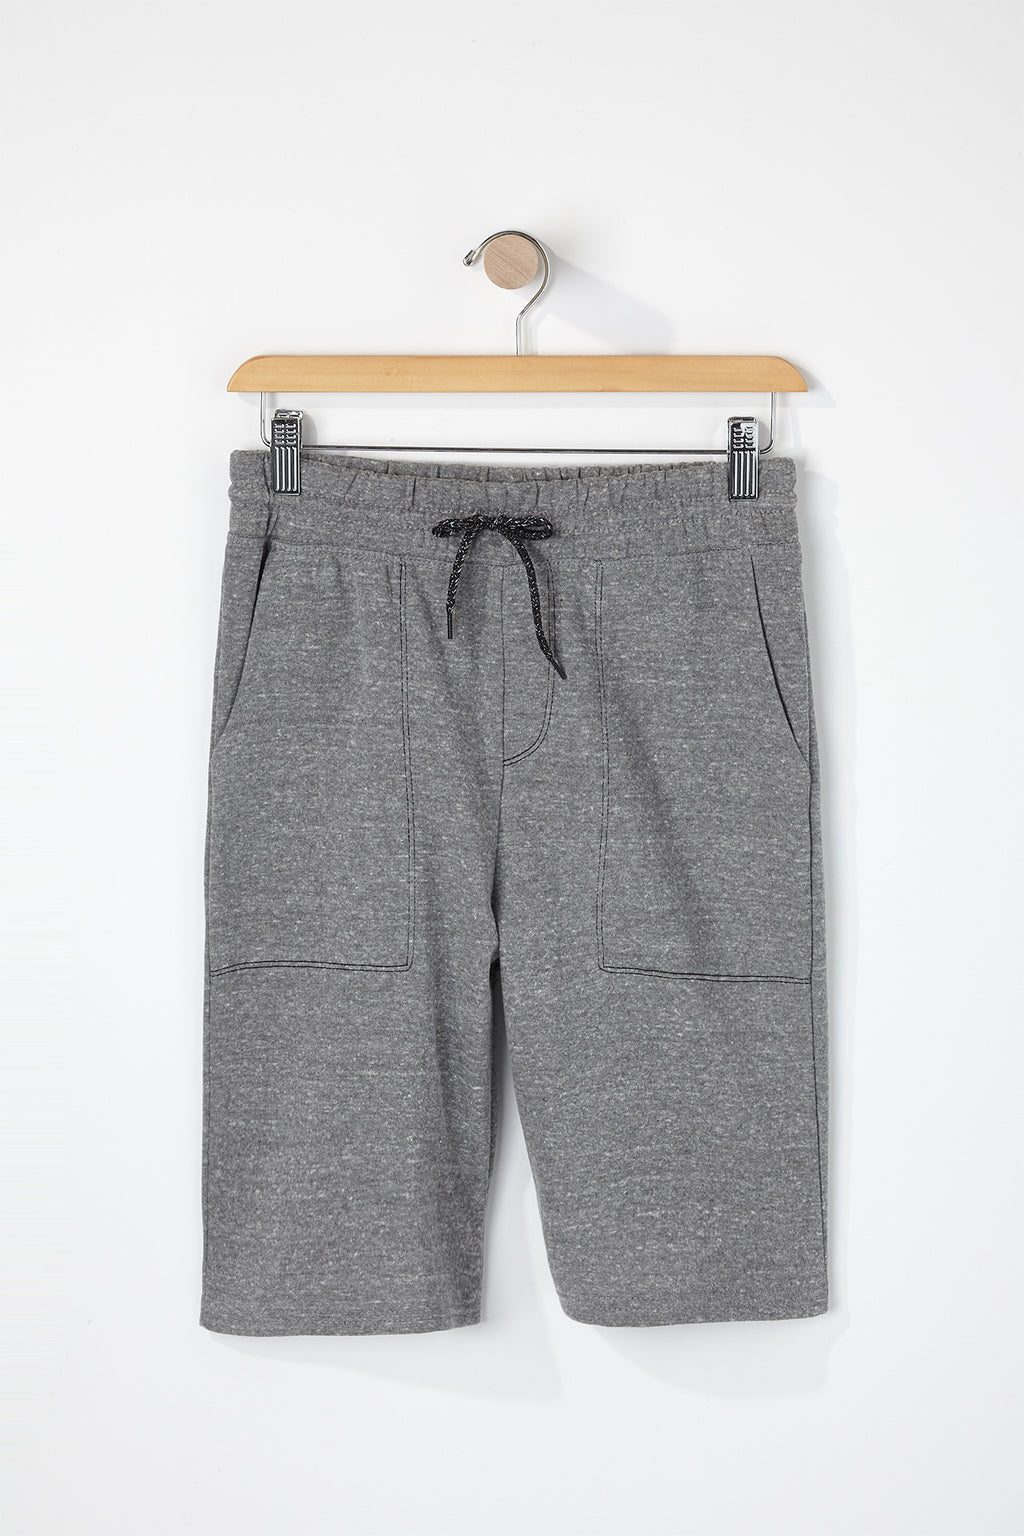 West49 Boys Fleece Jogger Shorts